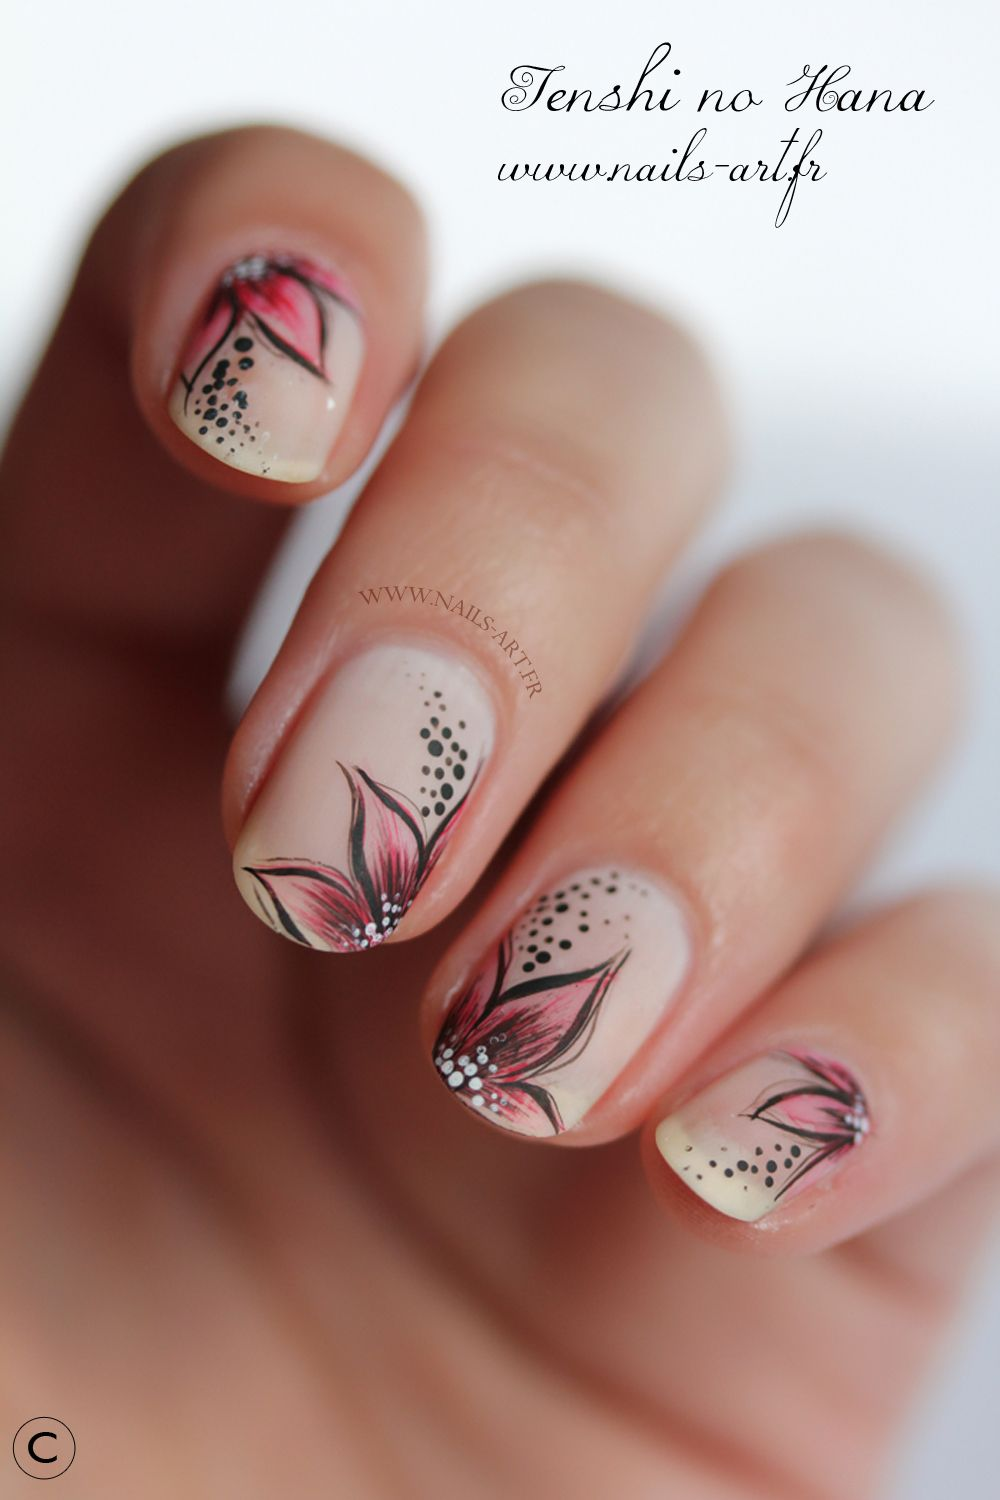 130 Easy And Beautiful Nail Art Designs 2018 Just For You Nails